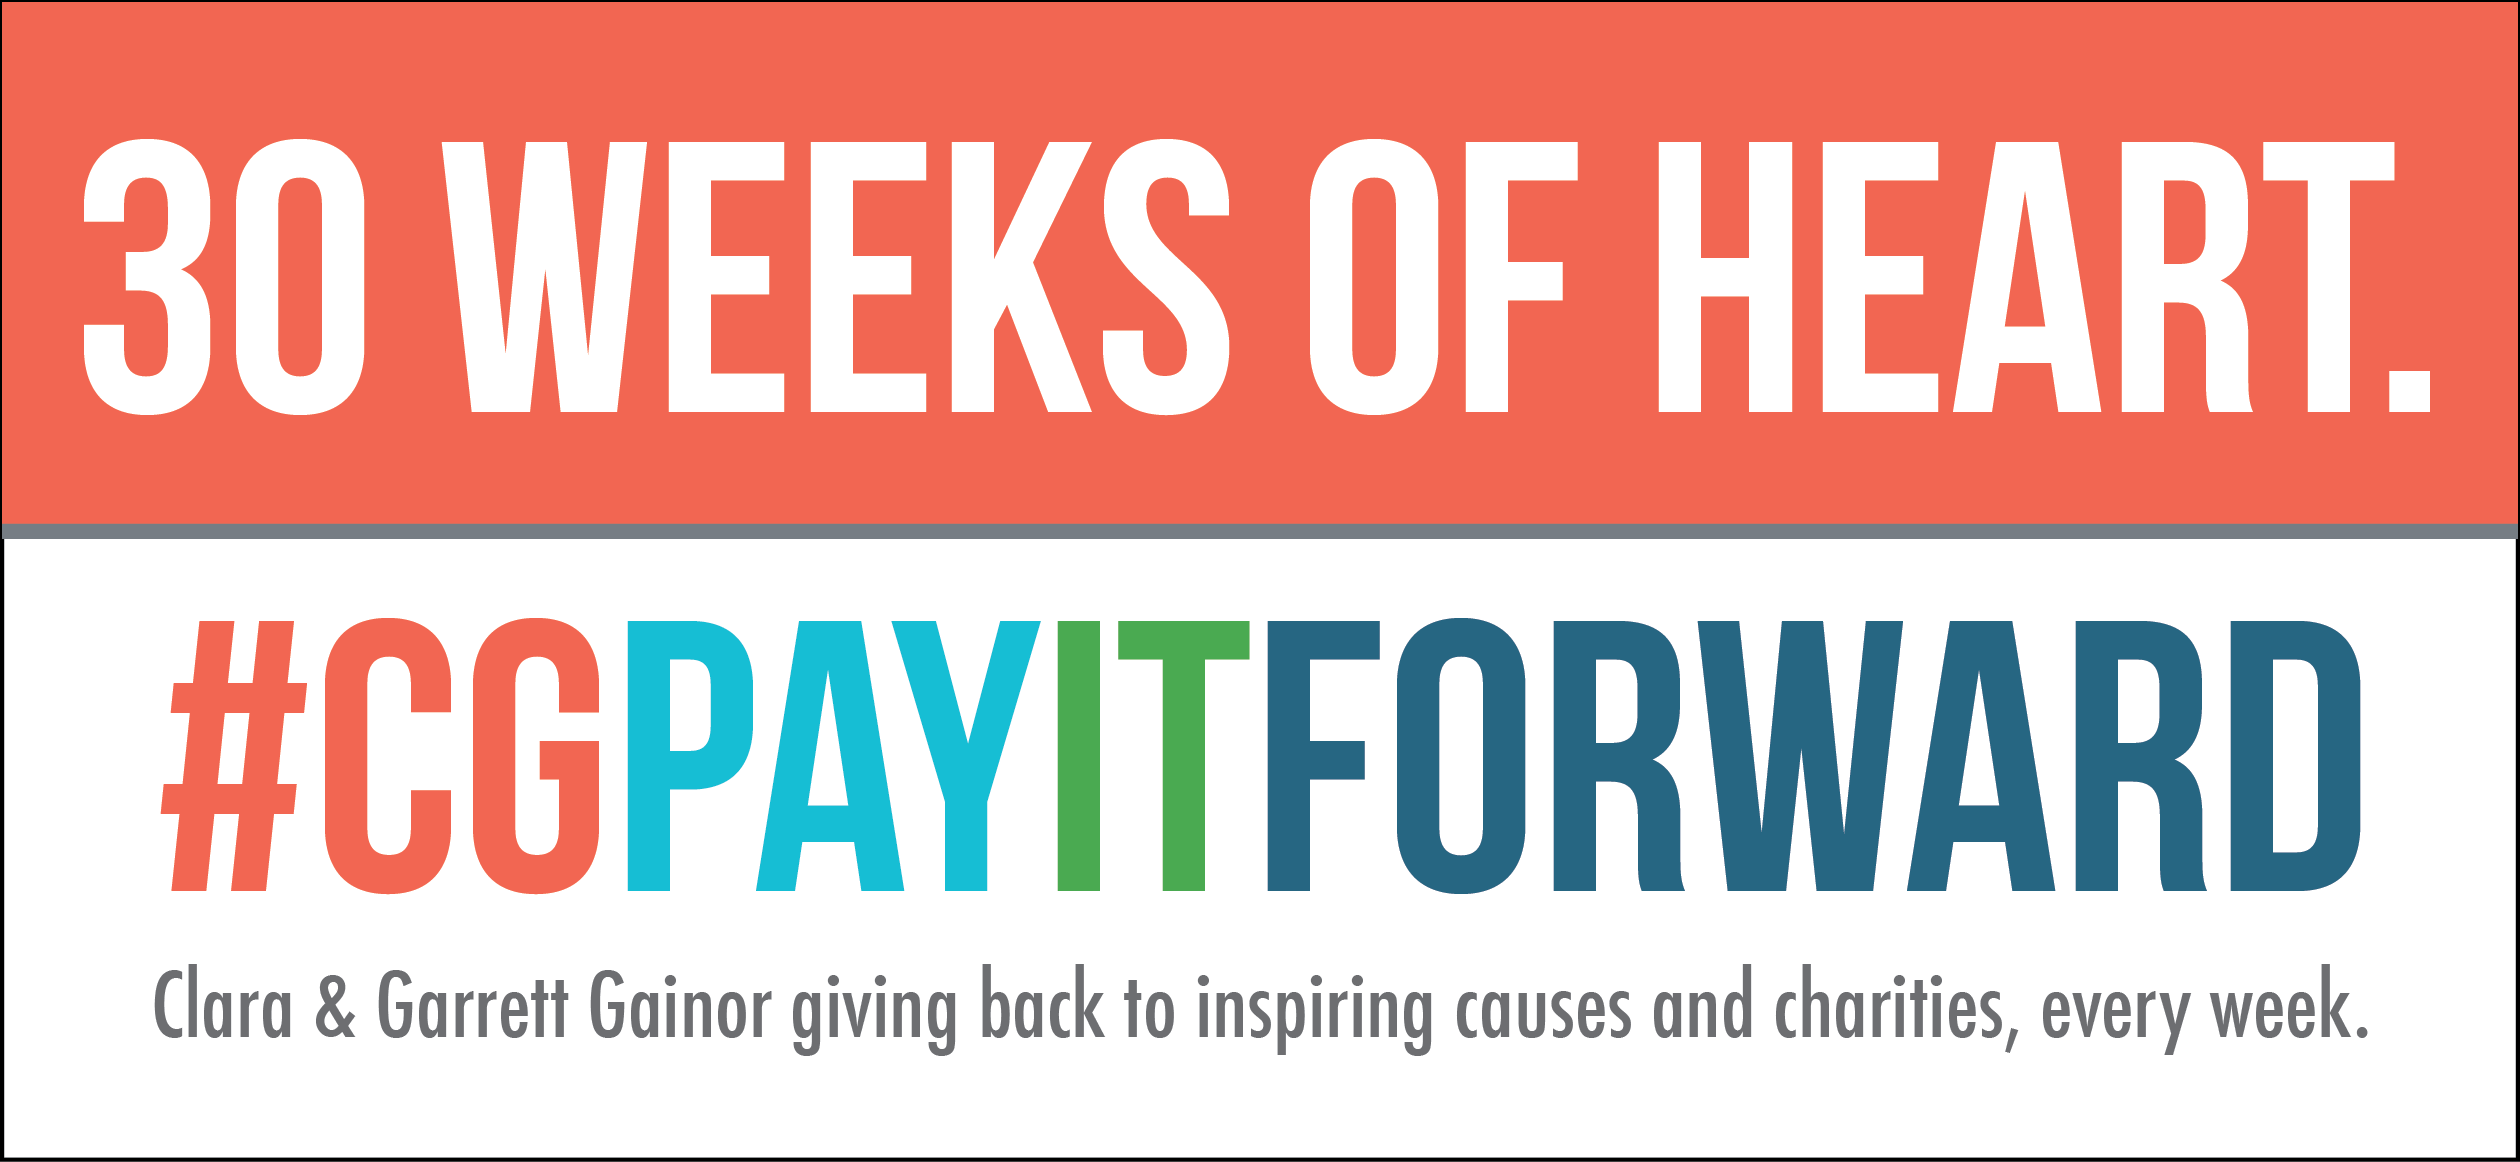 30 weeks of heart – #CGPayItForward